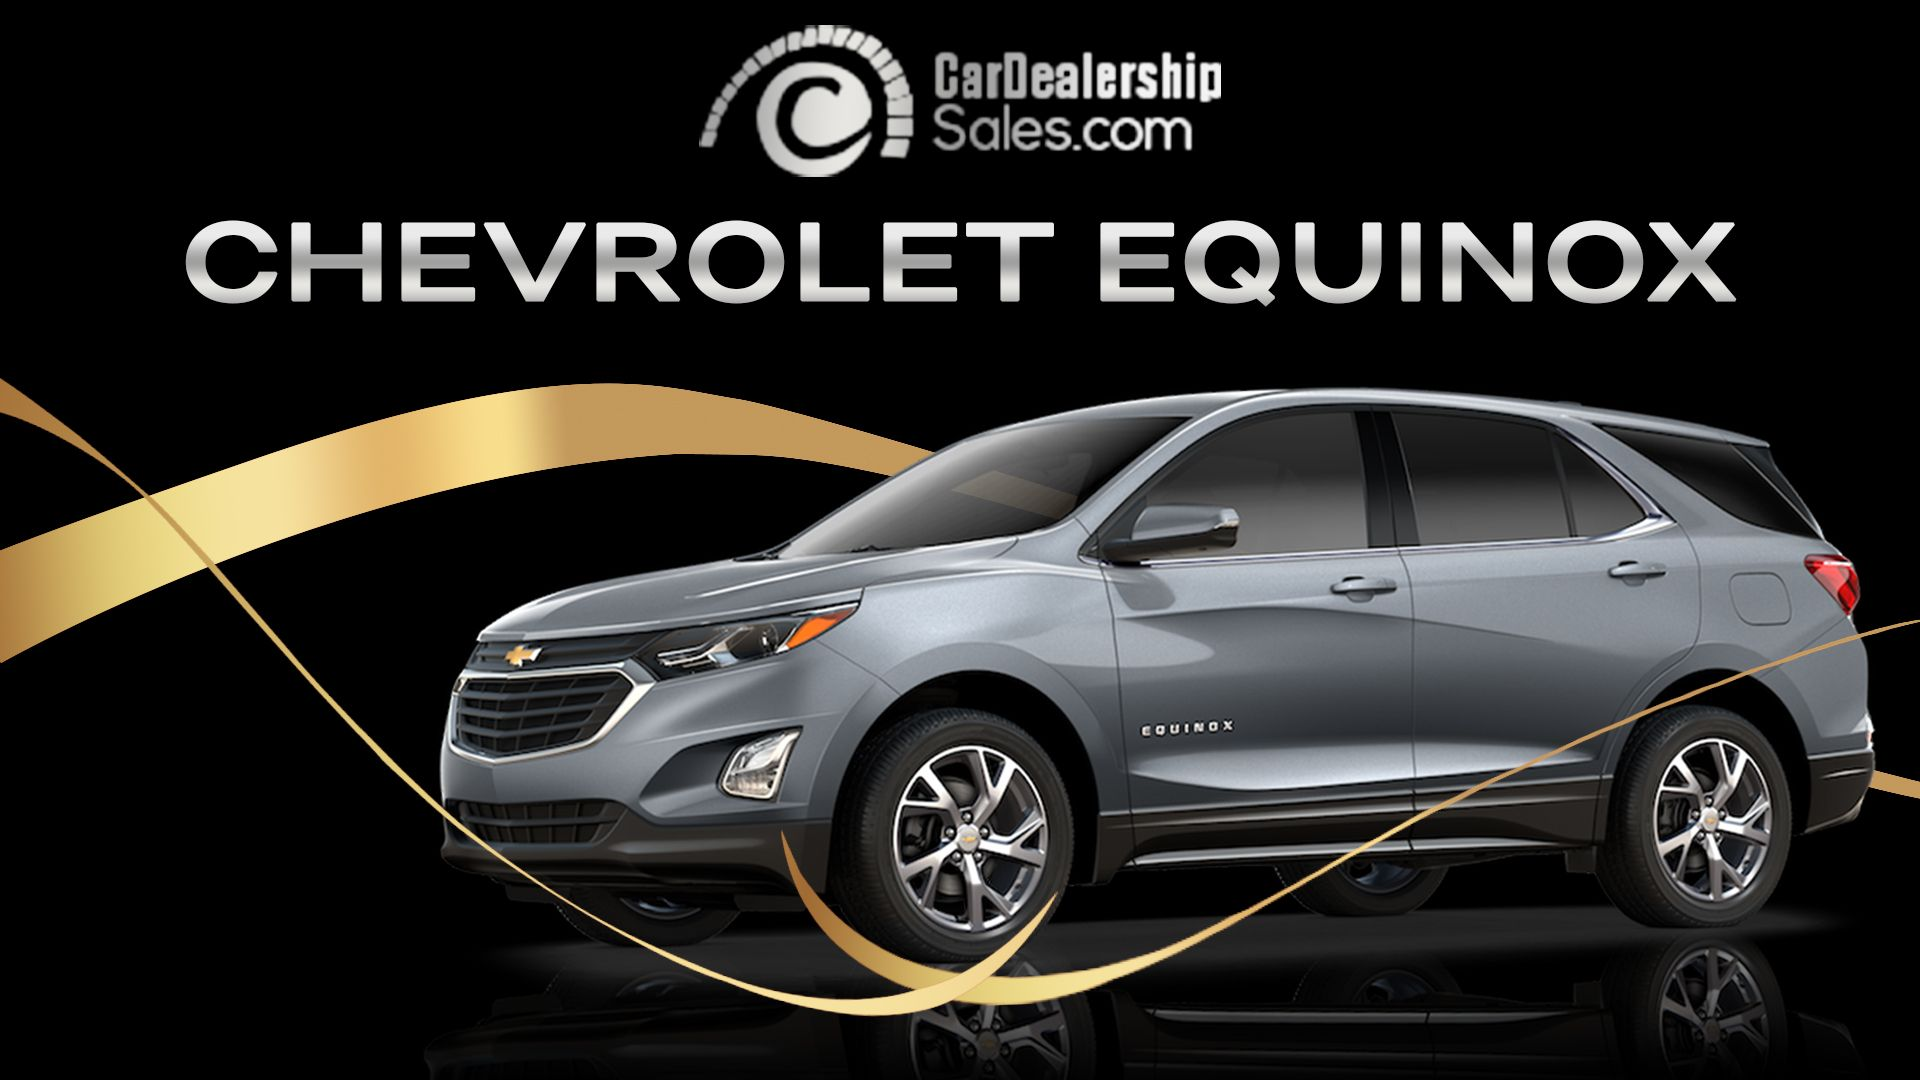 Chevy Equinox Reviews Prices Specs Chevy Equinox Best